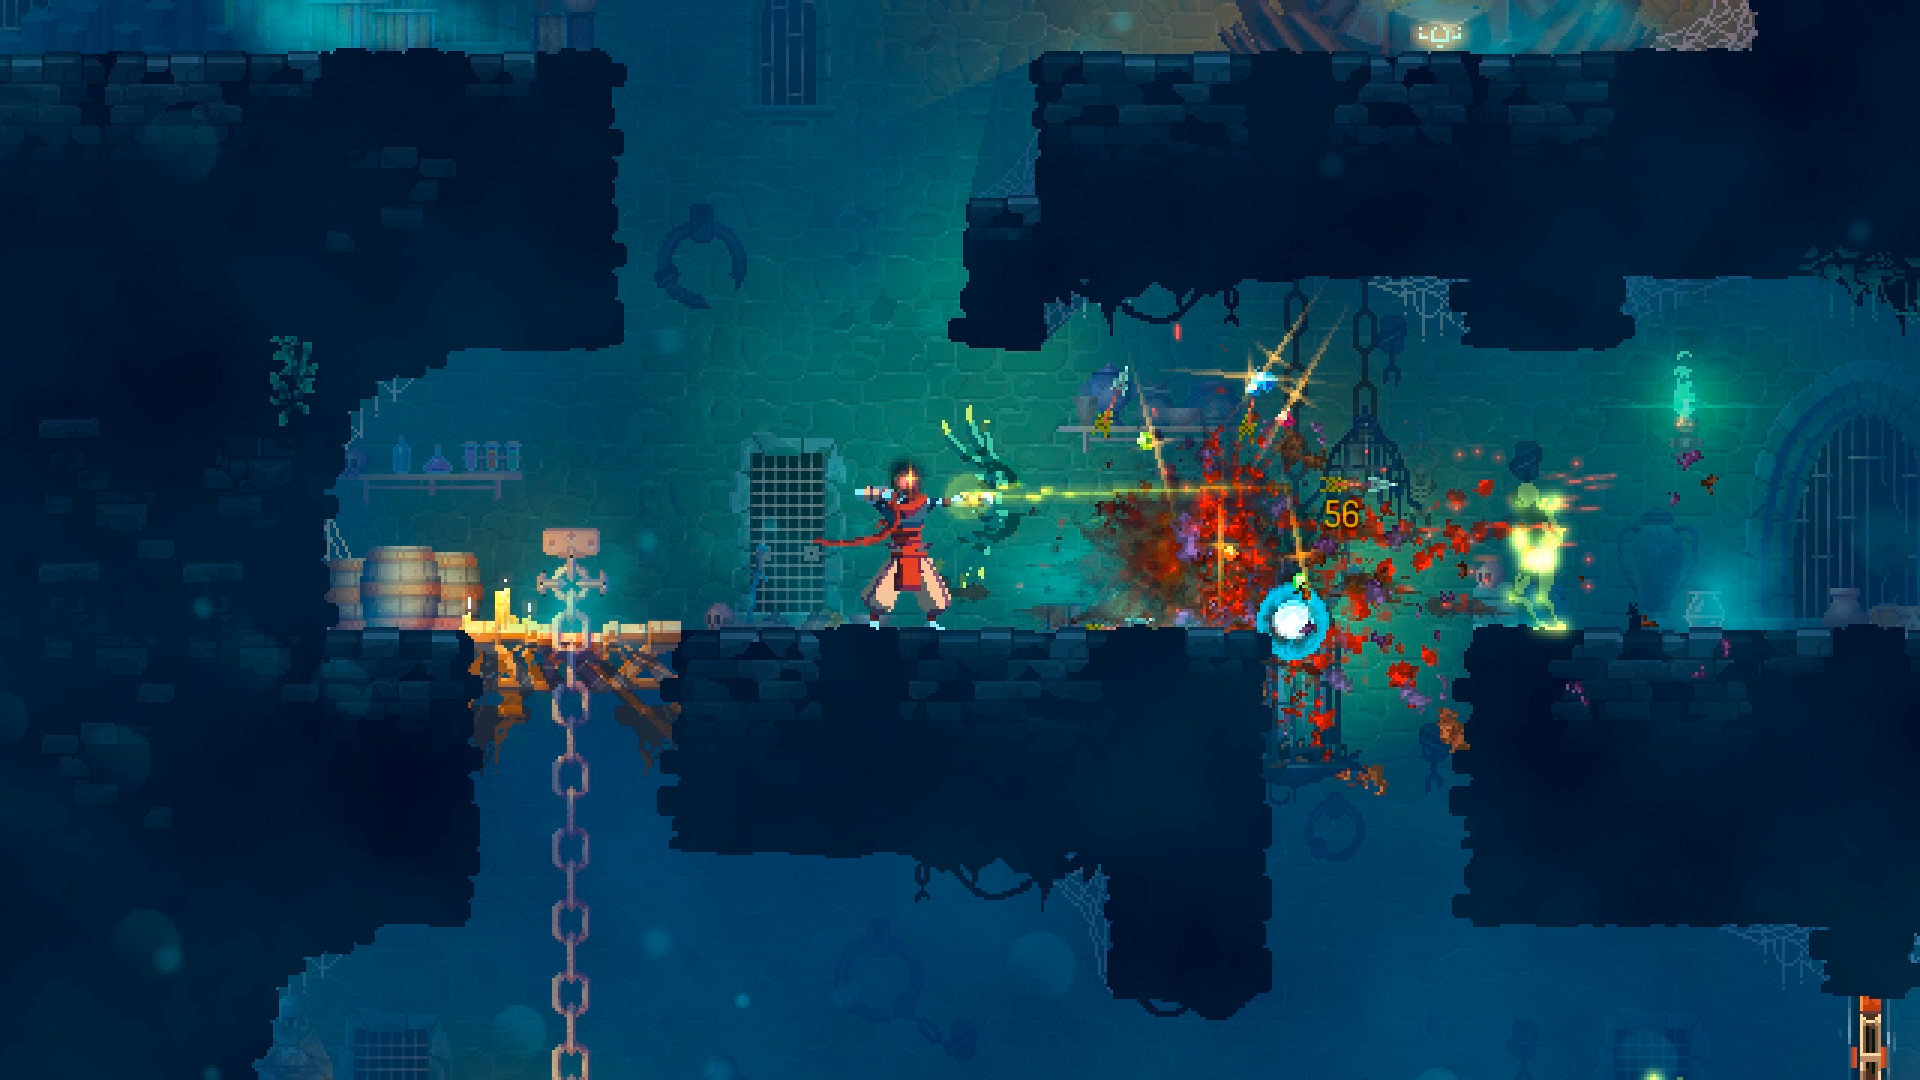 Dead Cells is out now on PC and consoles